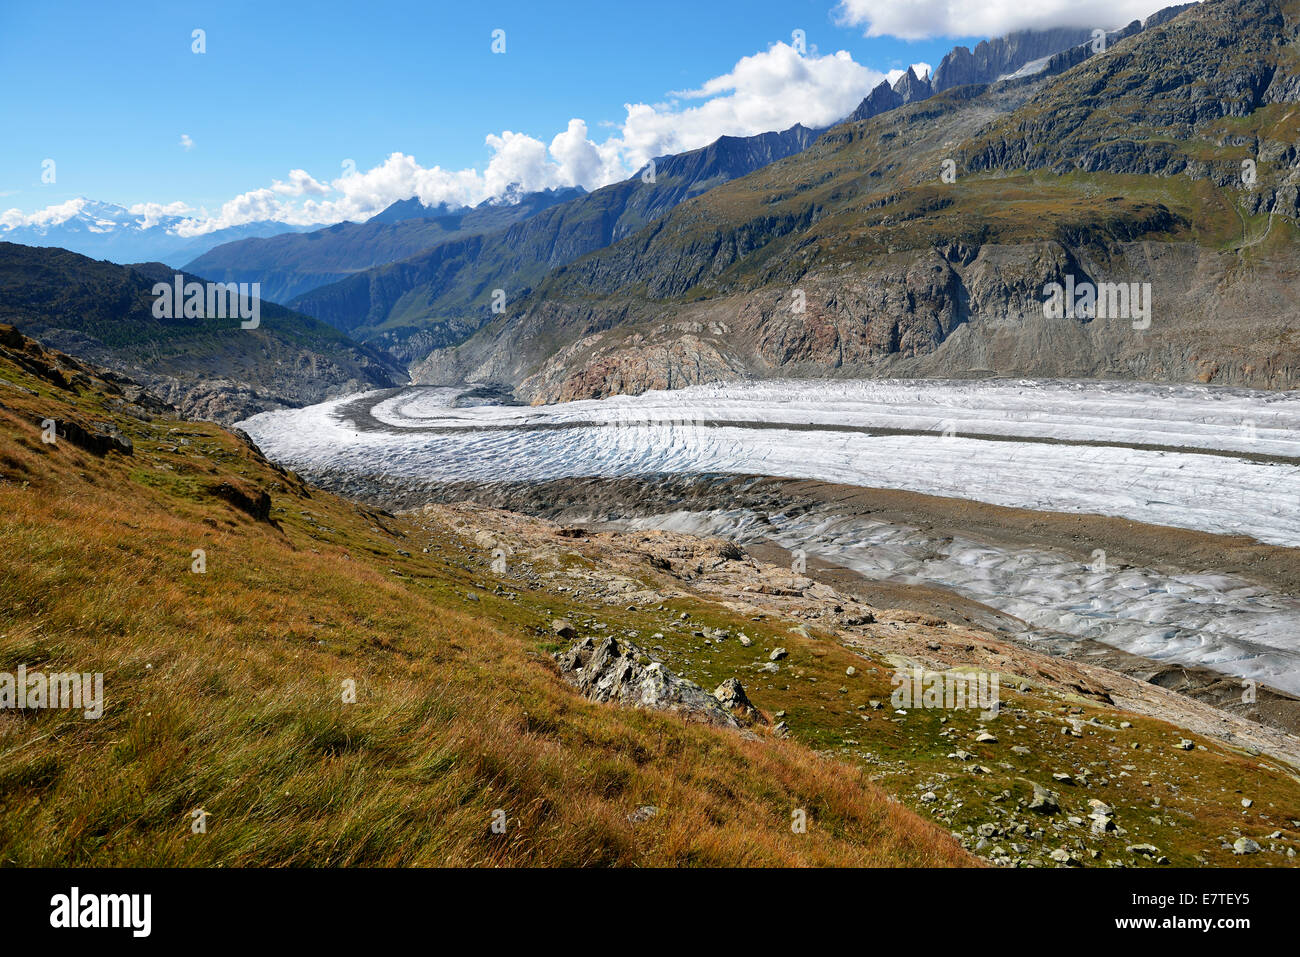 Foothills of the Great Aletsch Glacier, Canton of Valais, Goms, Switzerland - Stock Image